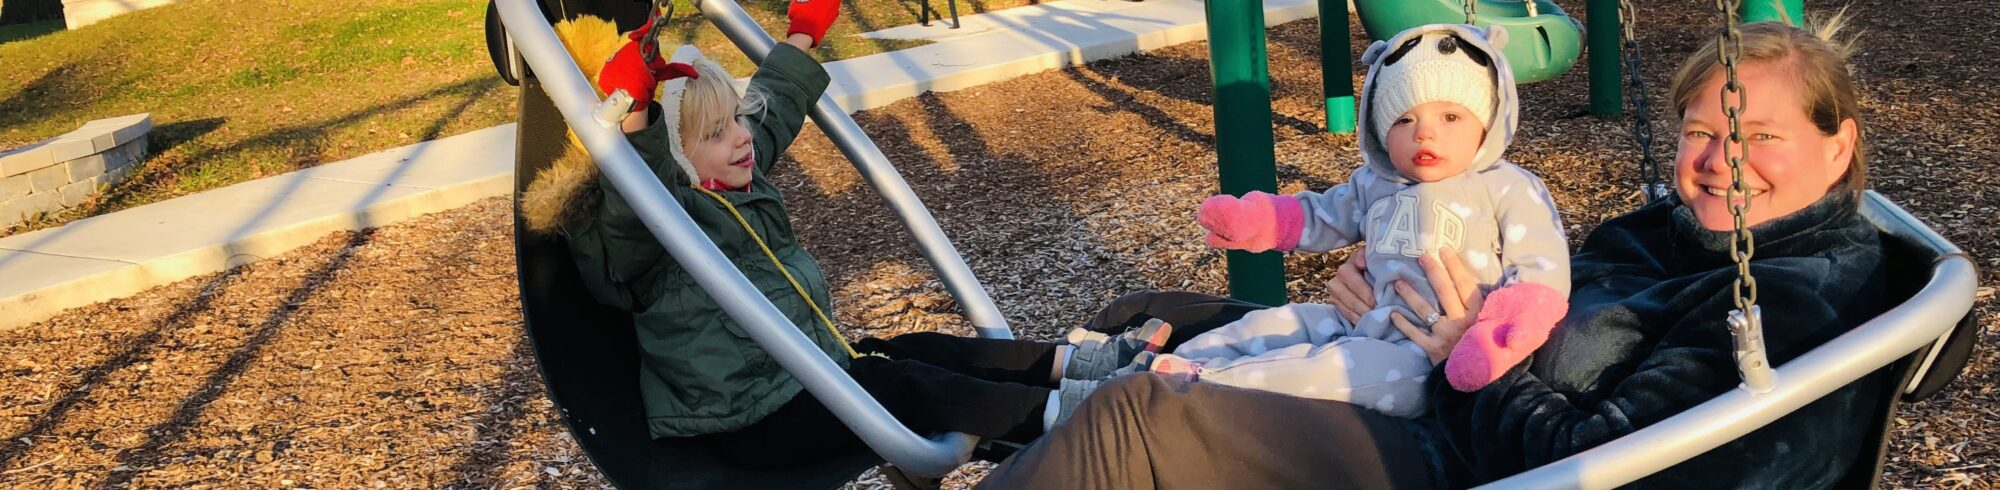 picture of family on swings